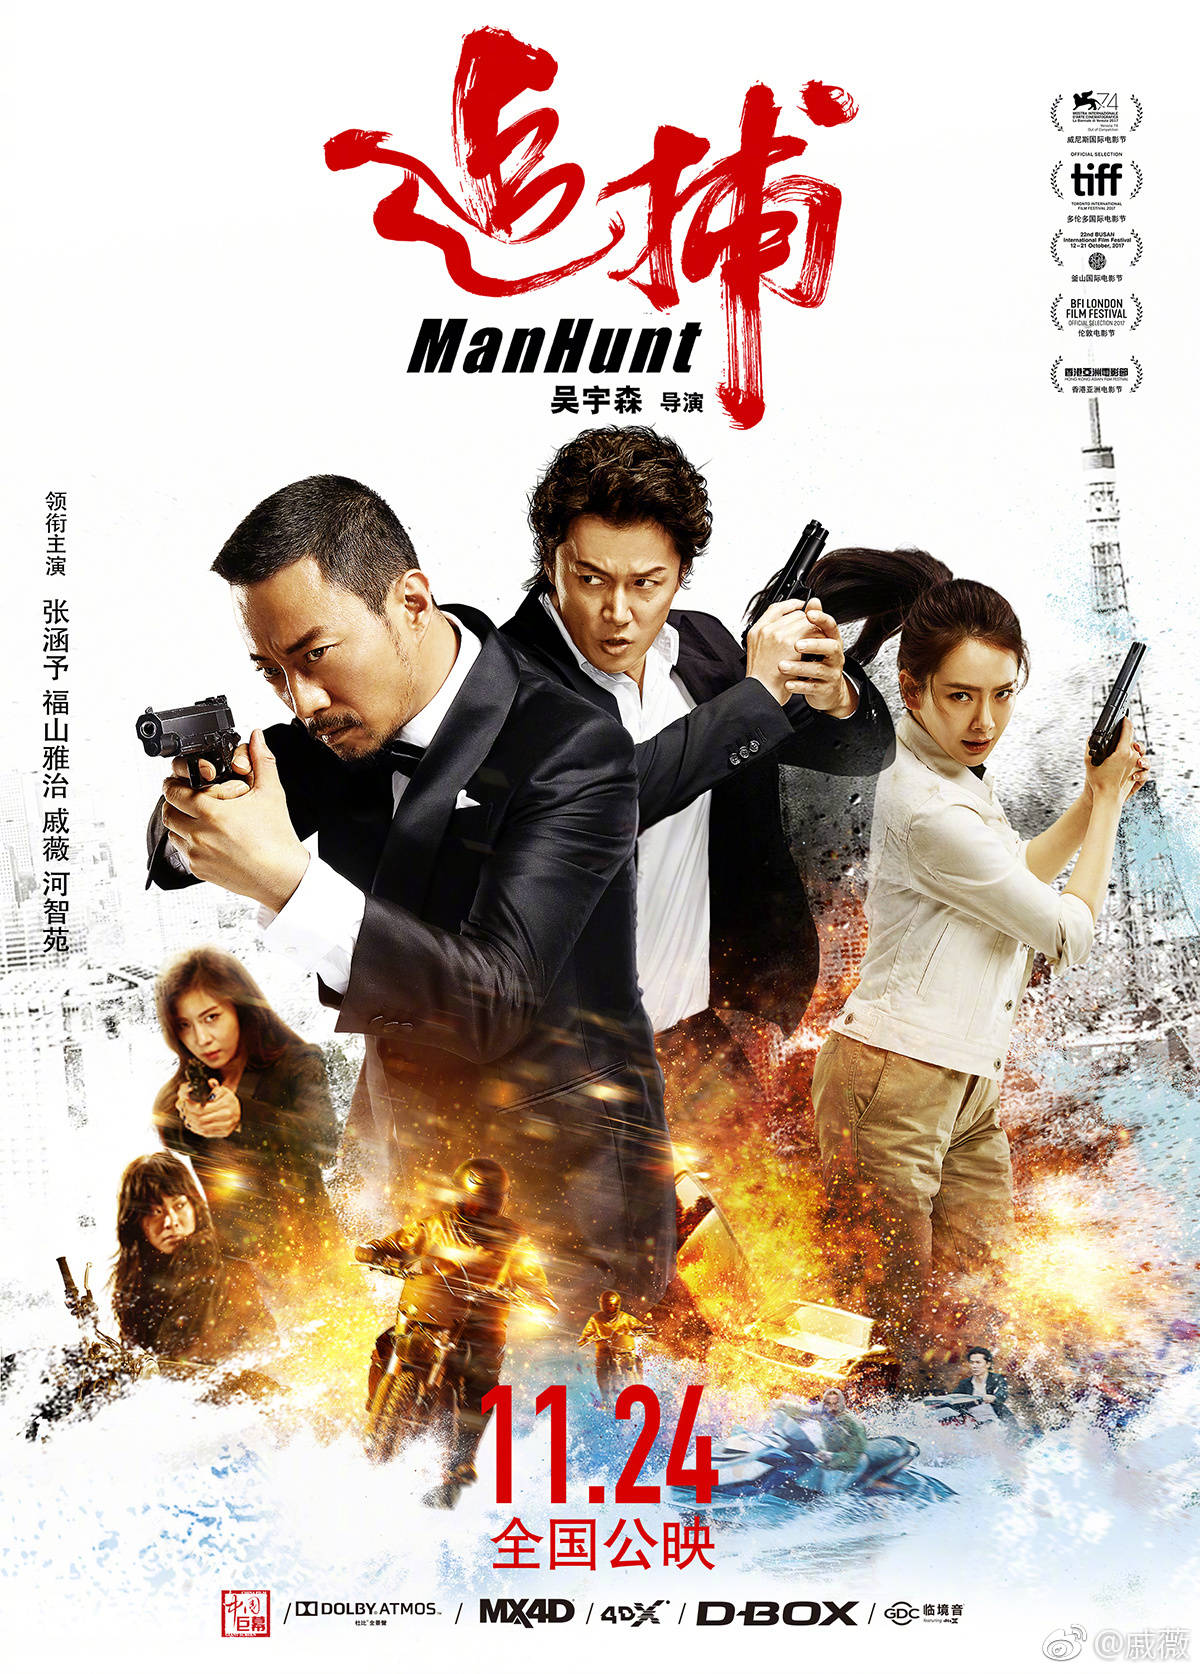 Netflix' Trailer for John Woo's May 4th debut of 'Manhunt